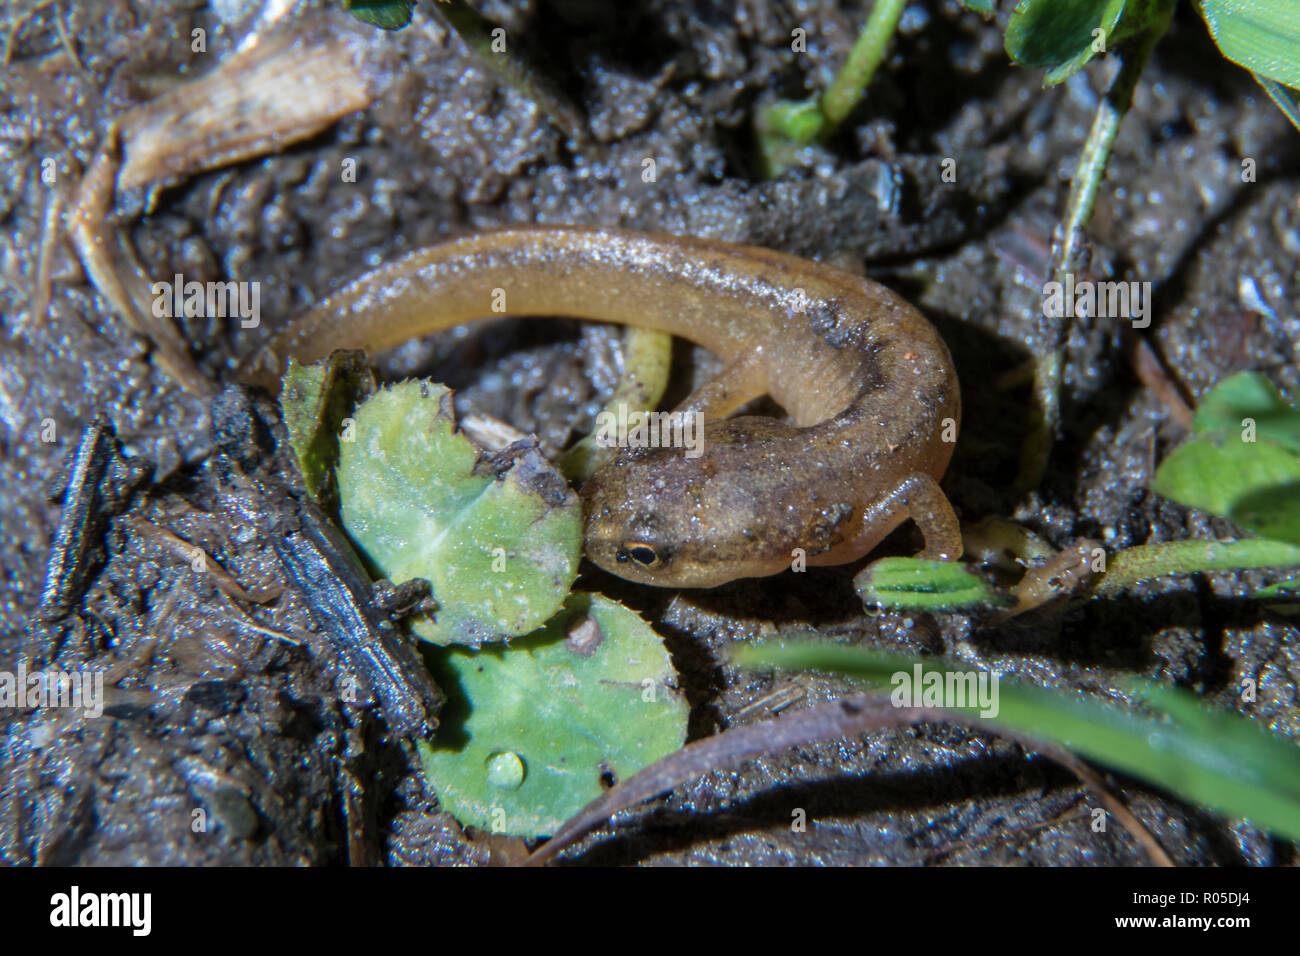 A young palmate newt (Lissotriton helveticus) photographied at night with a flash at Vielha, Aran valley, Catalonia. - Stock Image